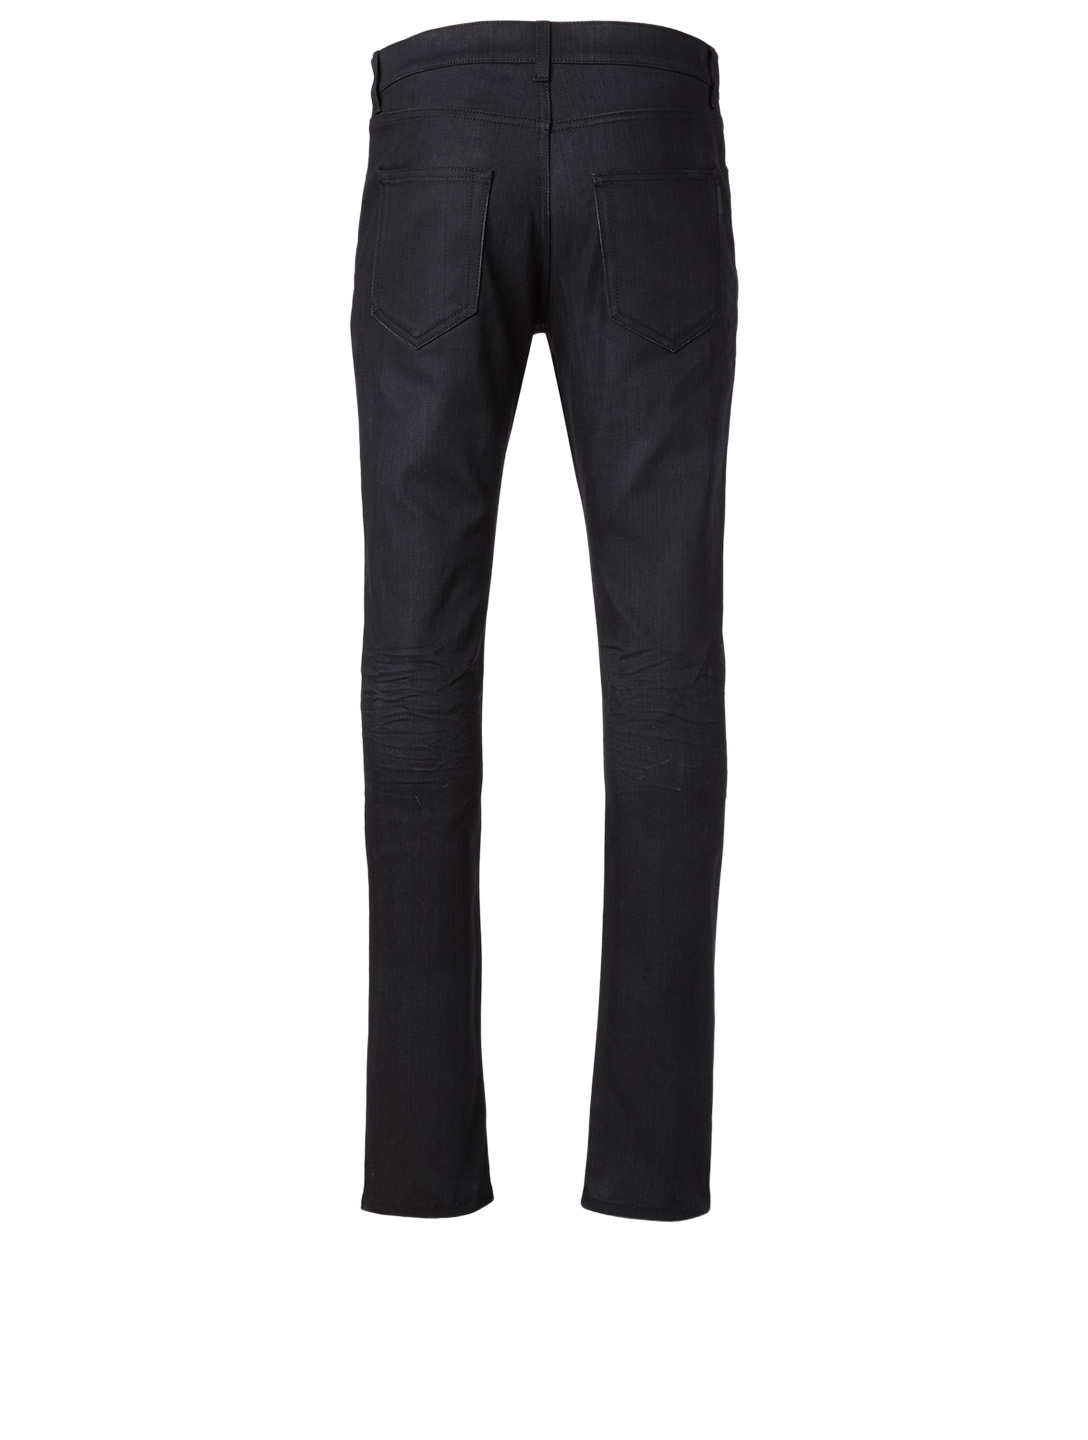 SAINT LAURENT Cotton Skinny Jeans Men's Black